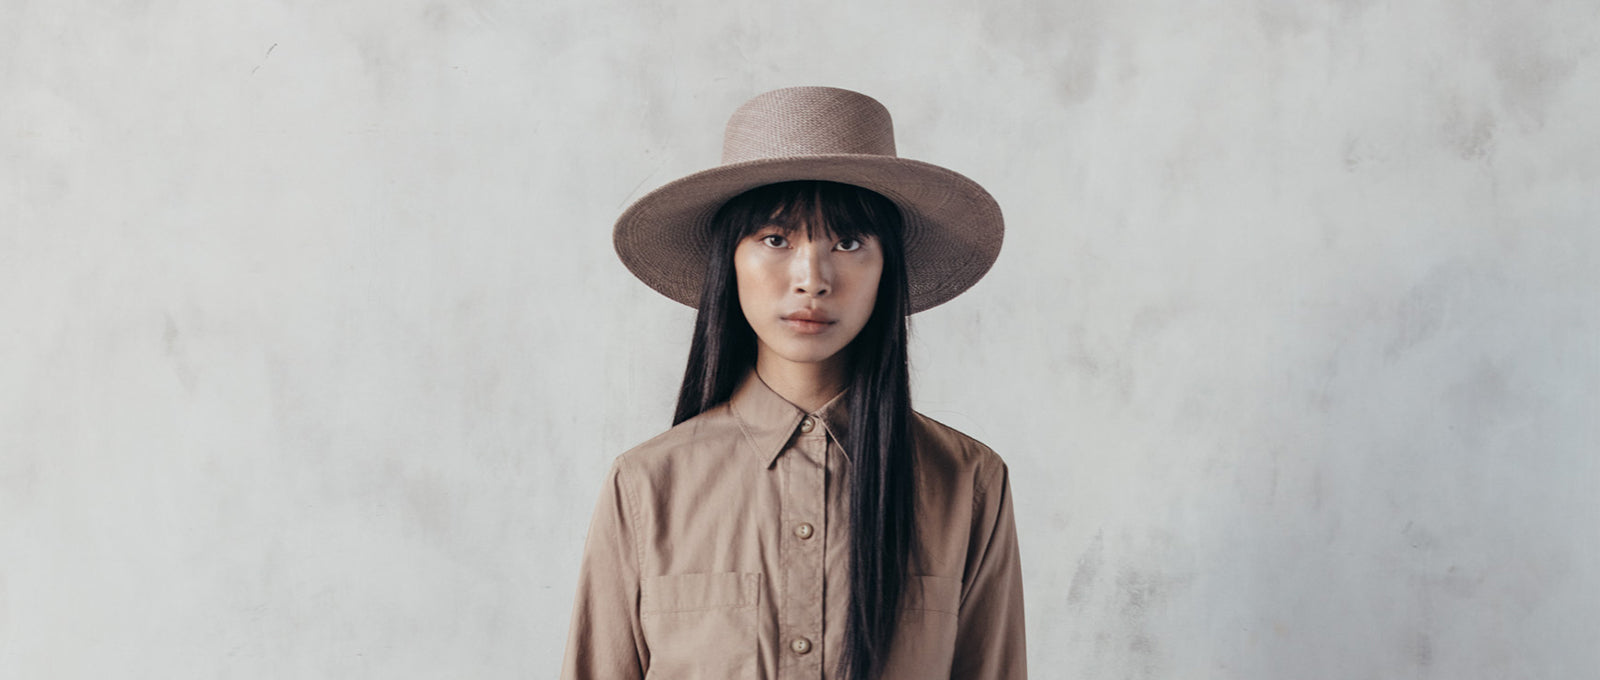 Janessa Leone summer hats for women. Brown beige boater hat with tonal band and flat brim. Flat top hat with quality materials. high end luxury style boater hat for women